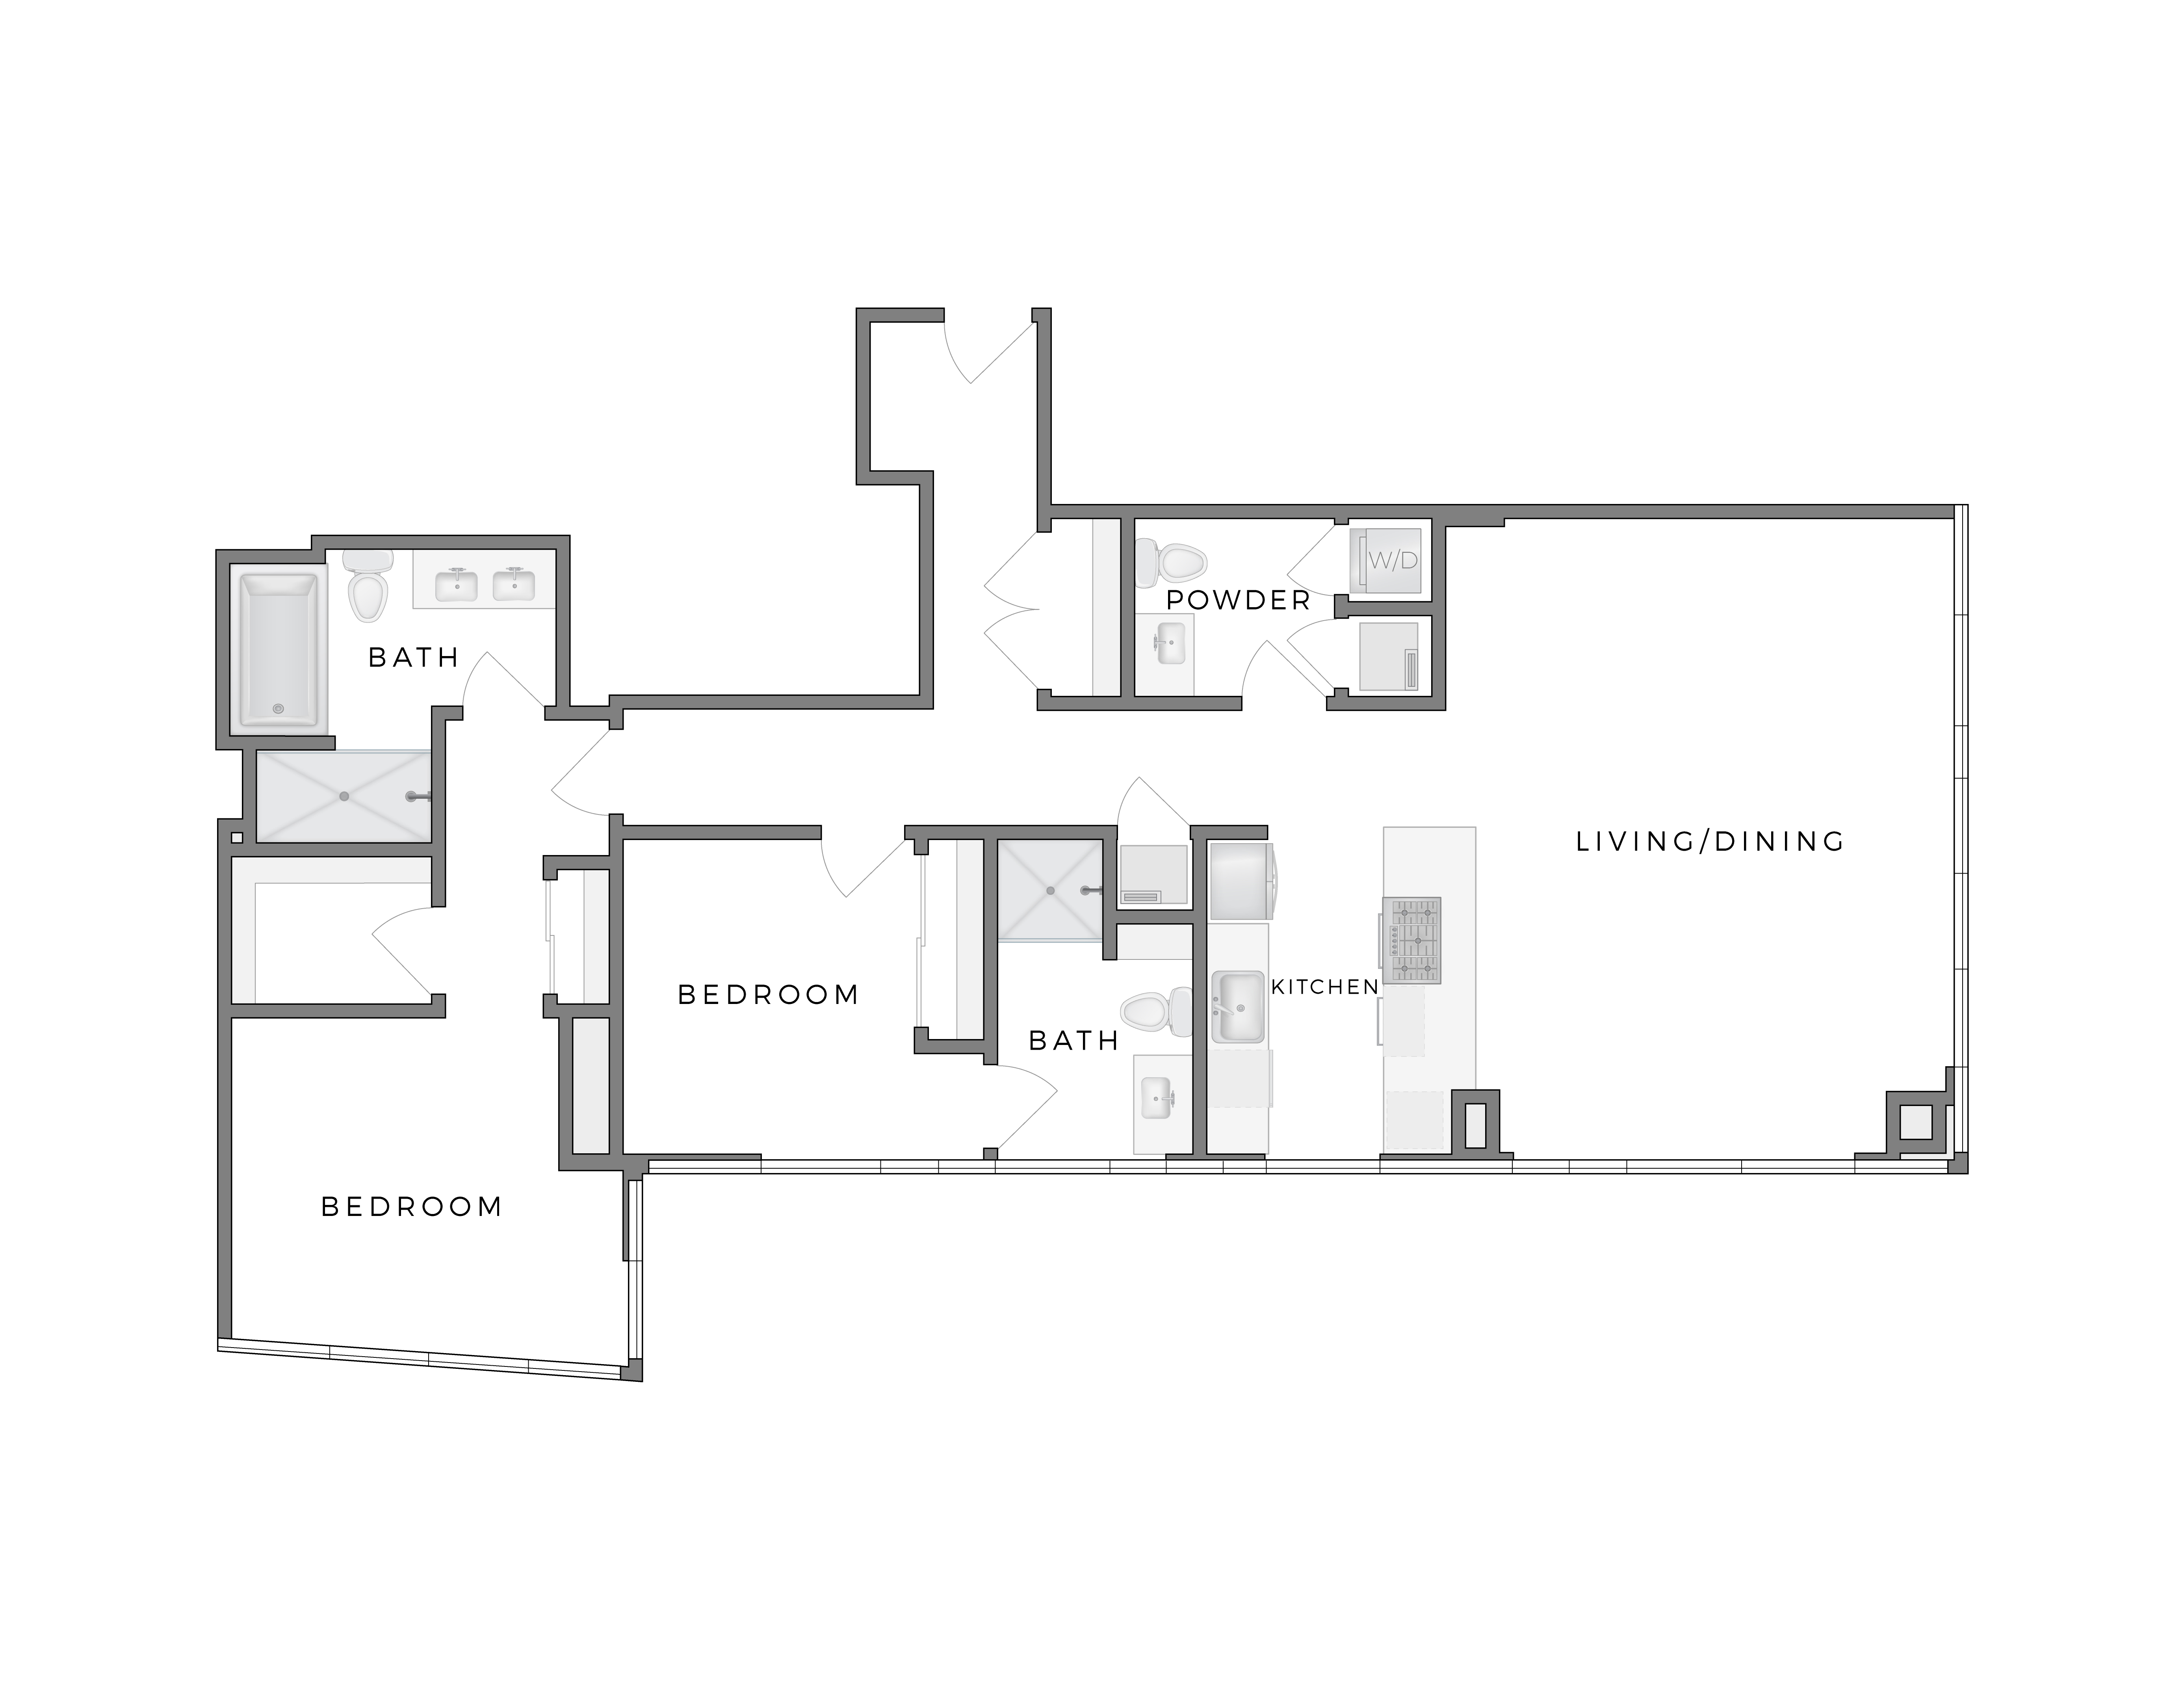 Atelier Warhol 3 apartment floorplan diagram with two bedrooms, two and a half bathrooms, kitchen, and living dining area